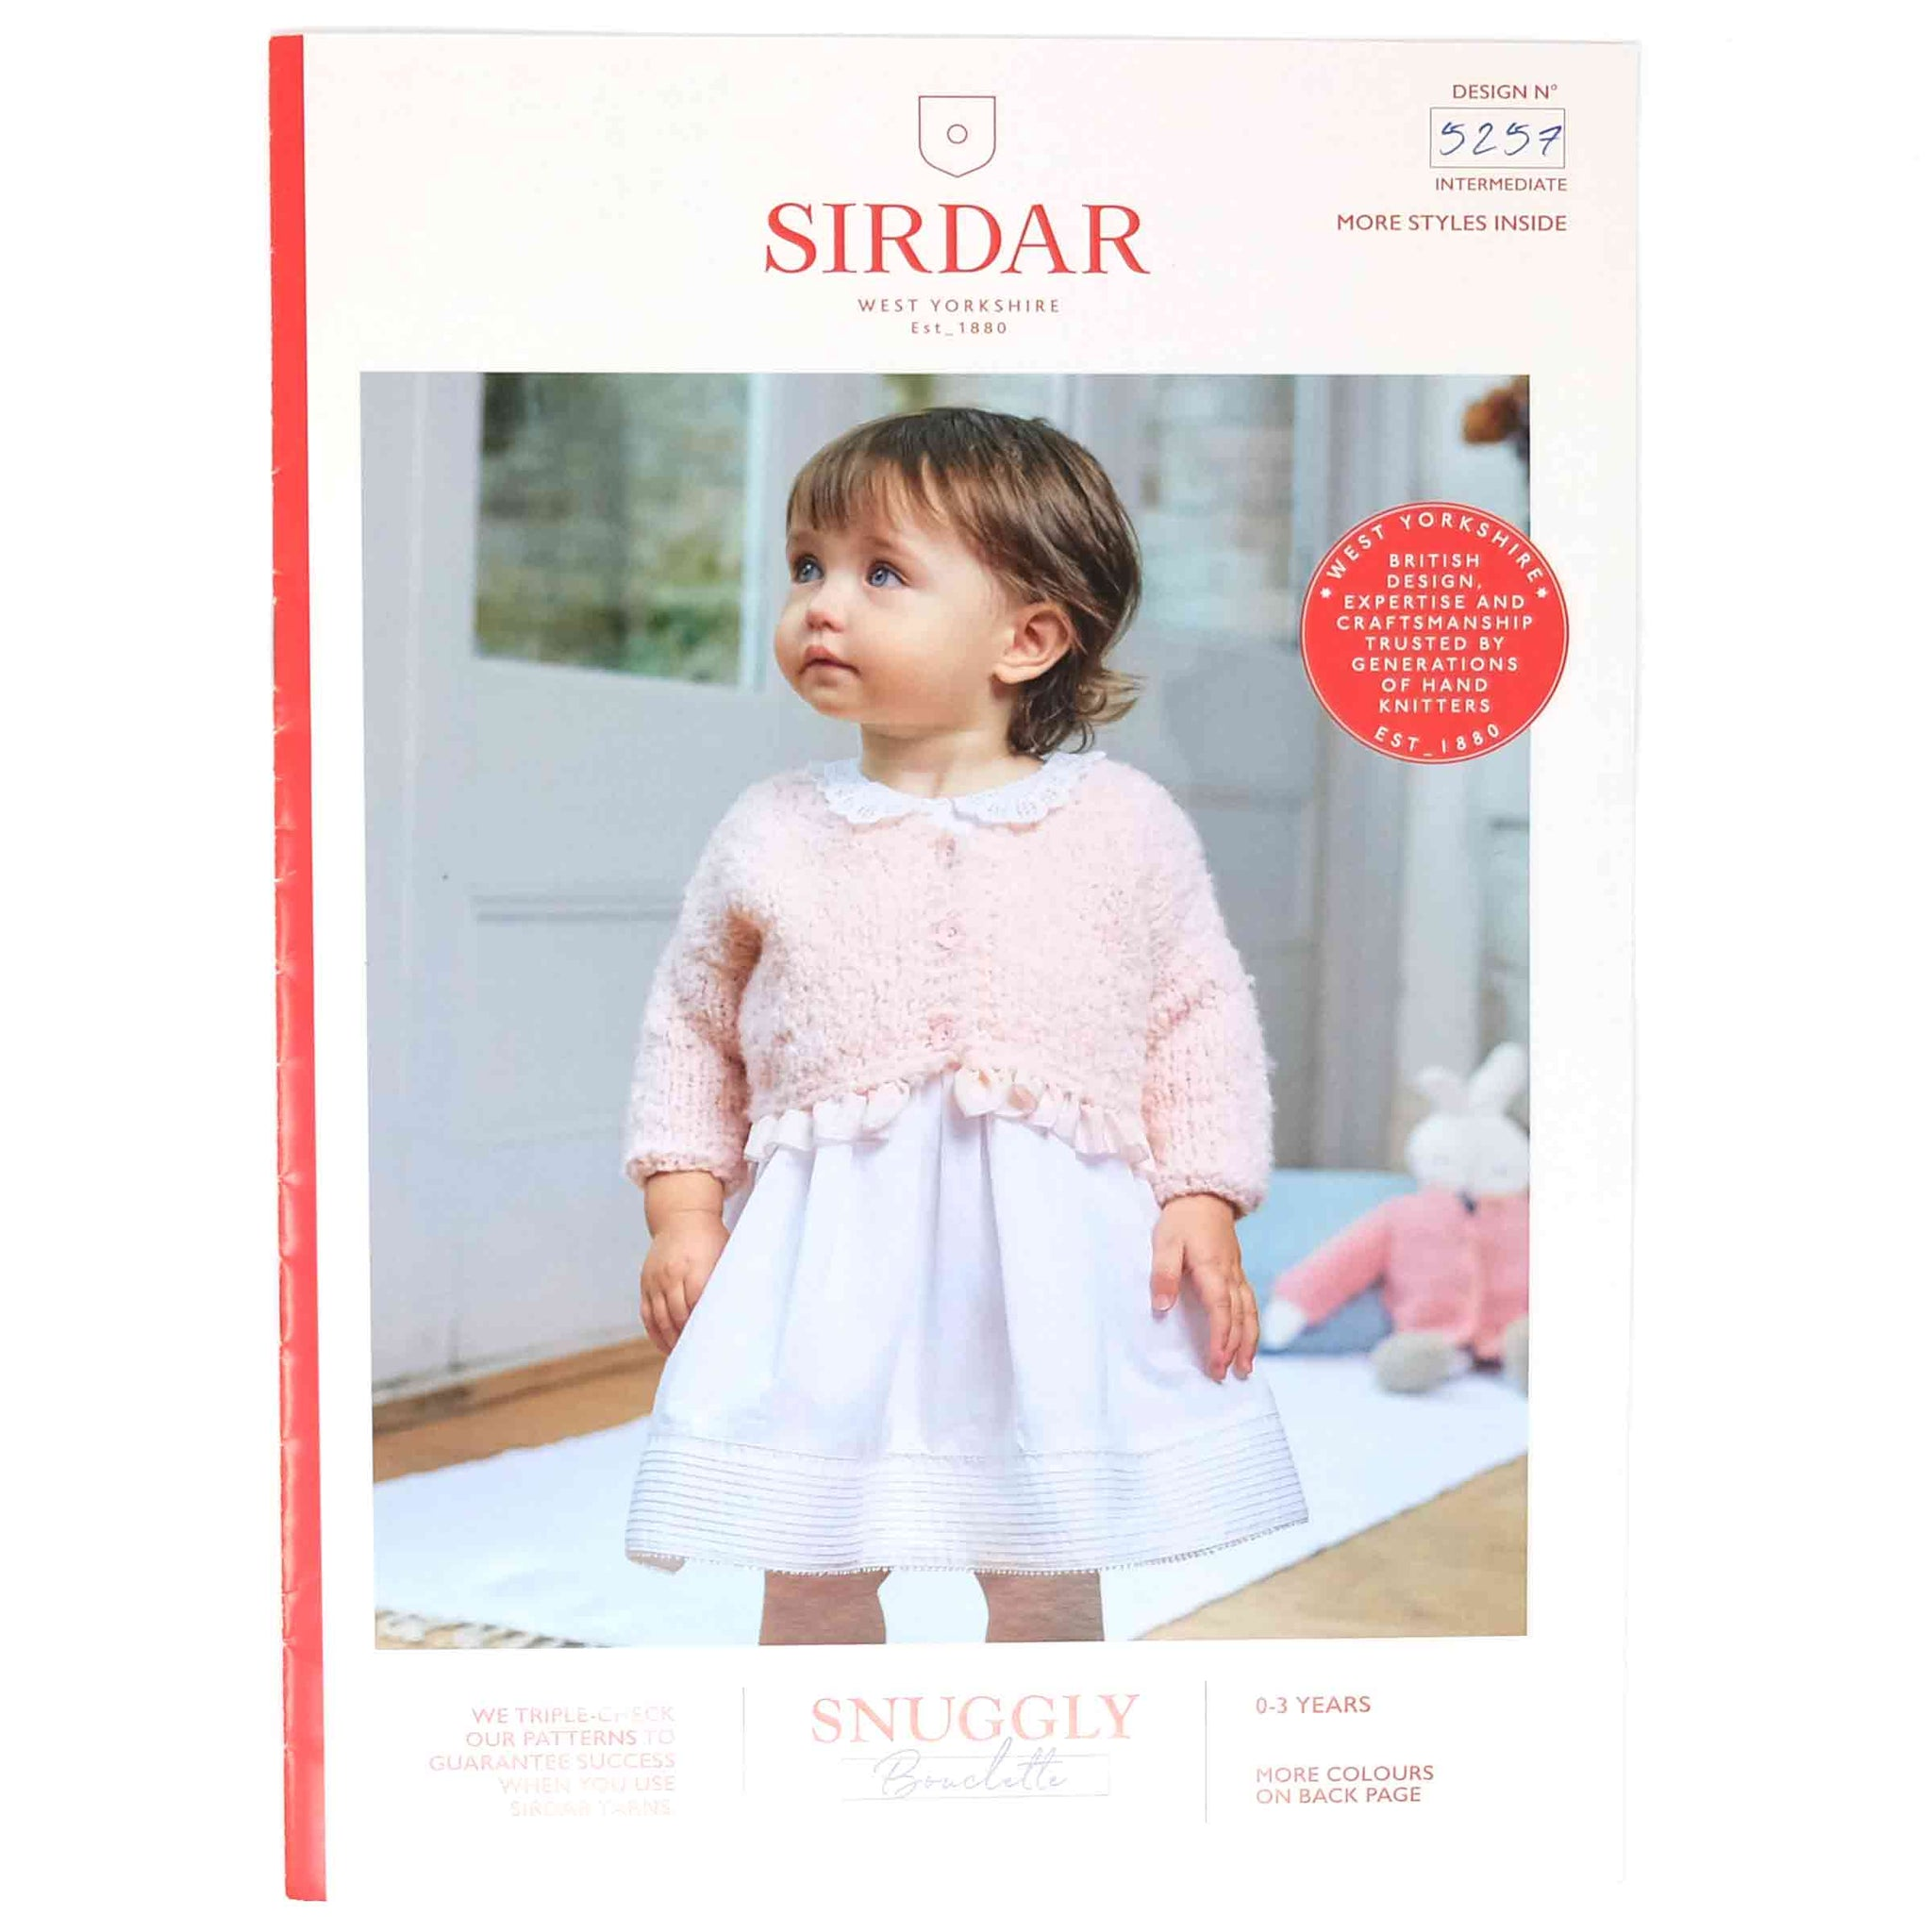 Sirdar Snuggly Bouclette Pattern 5257 Girl's V Neck Cardigan & Doll's Cardigan